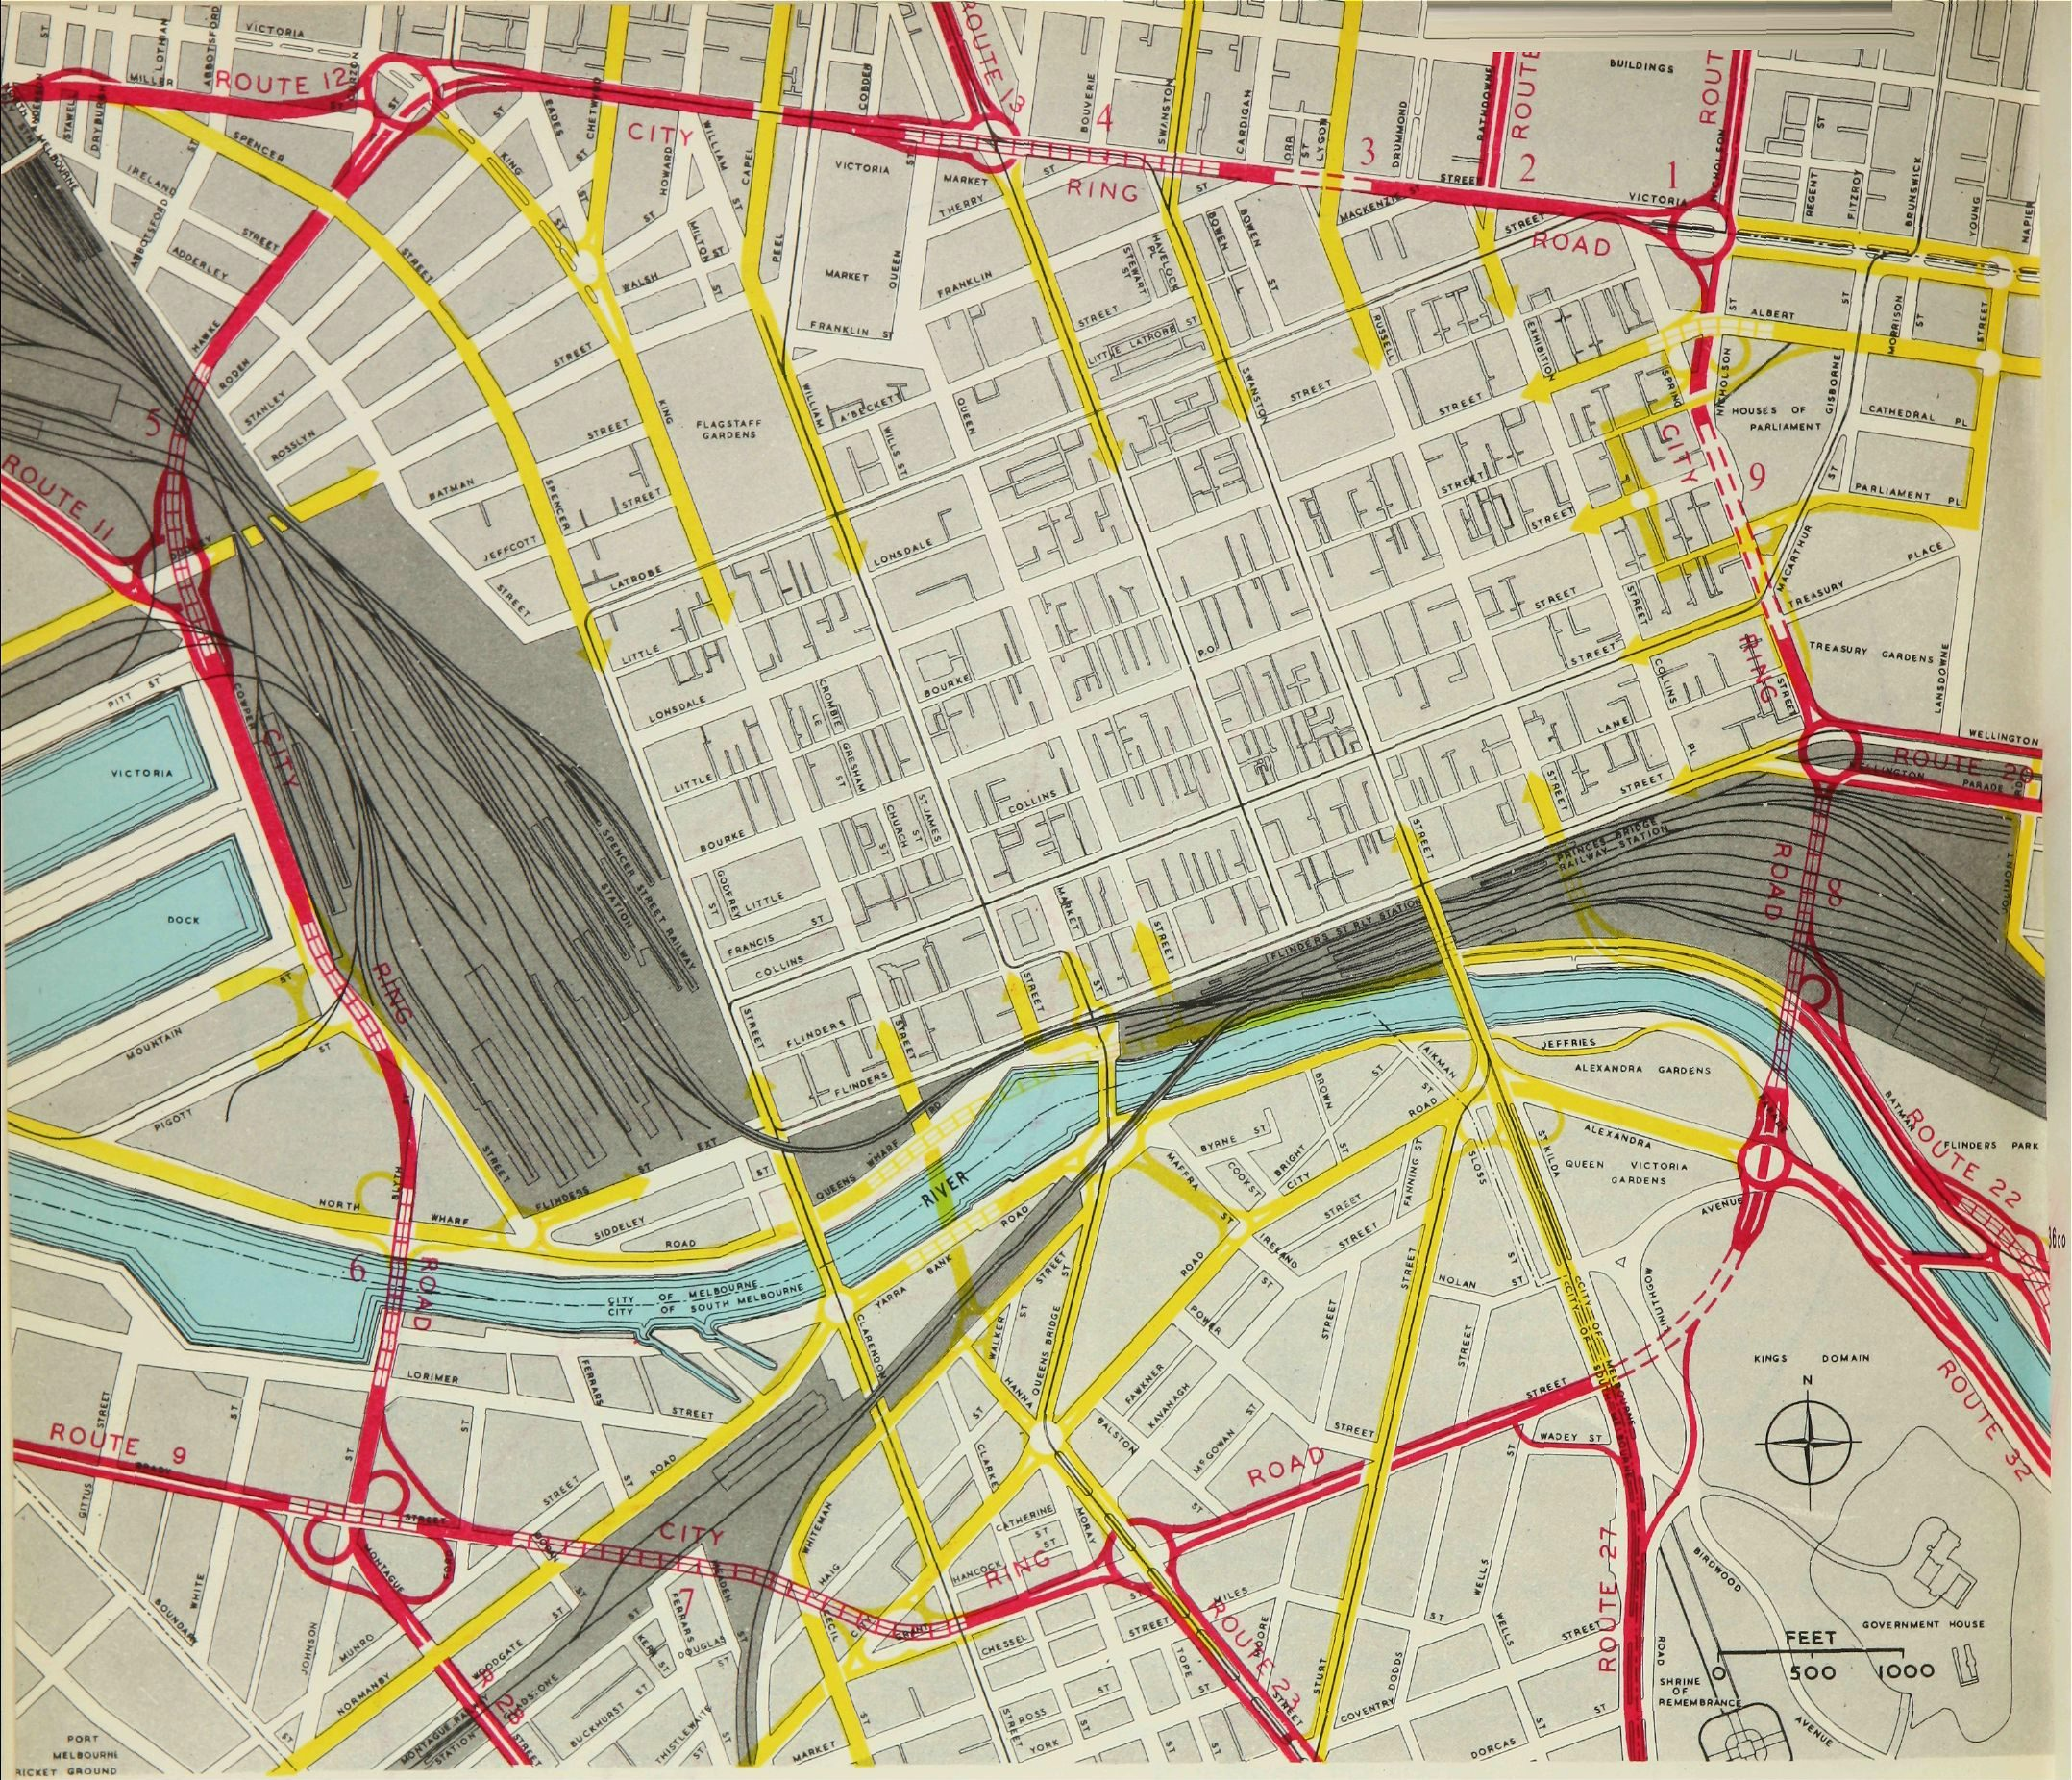 The City Ring Road that Melbourne never built - Waking up in